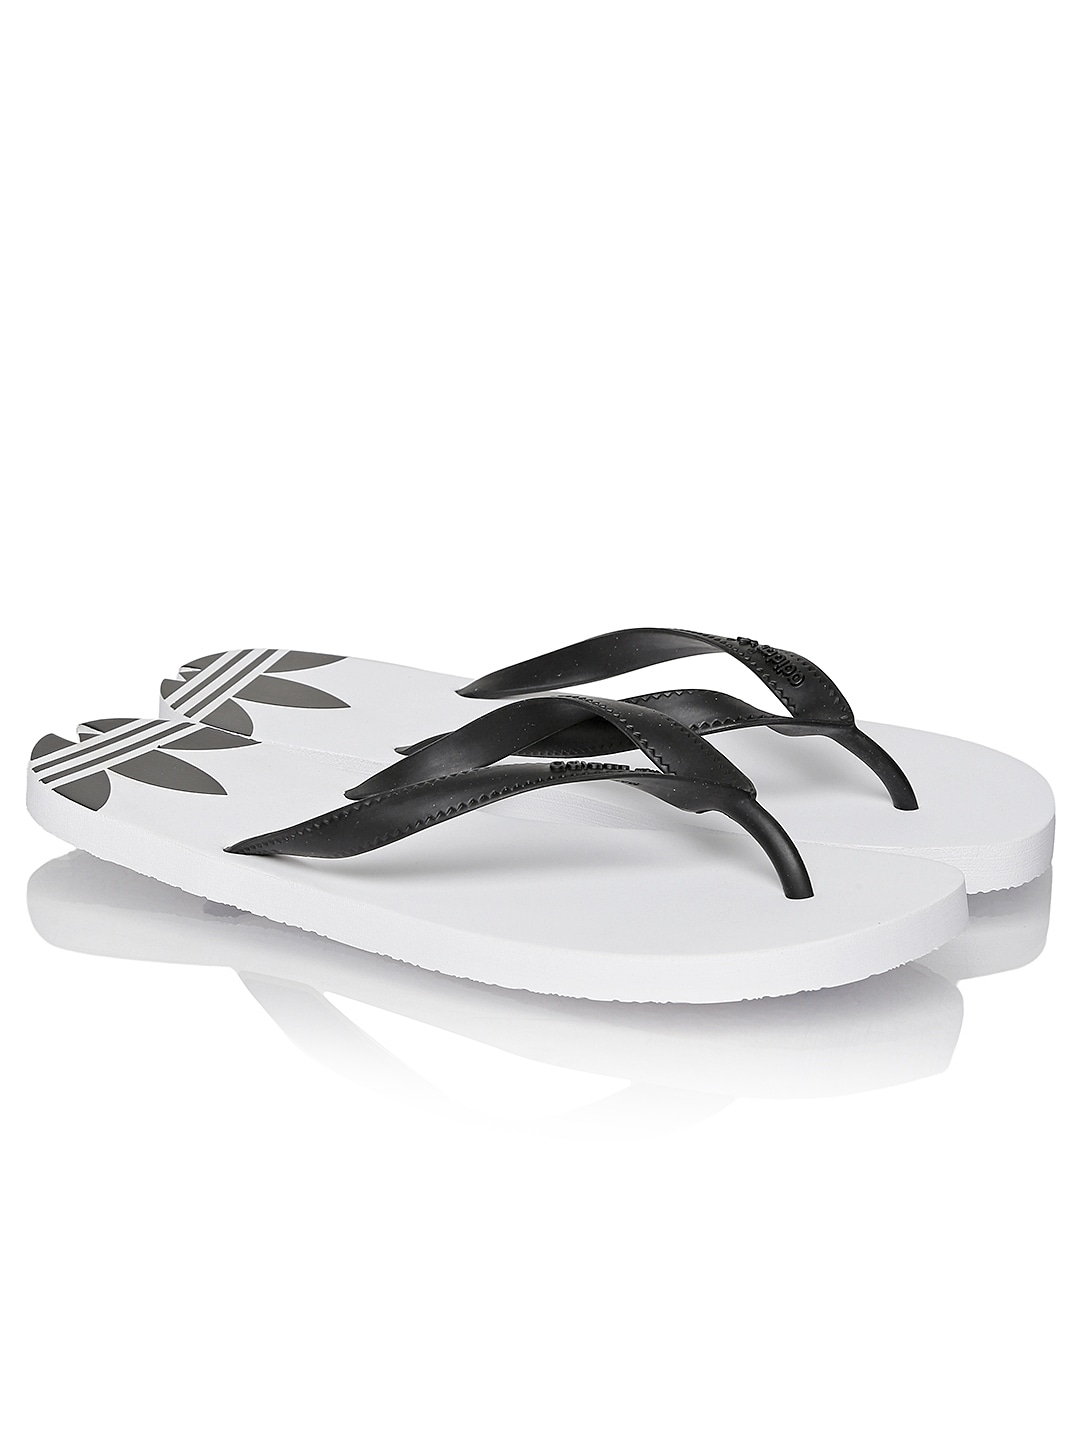 96680298a Adidas originals d65627 Men Black And White Adi Sun Flip Flops- Price in  India